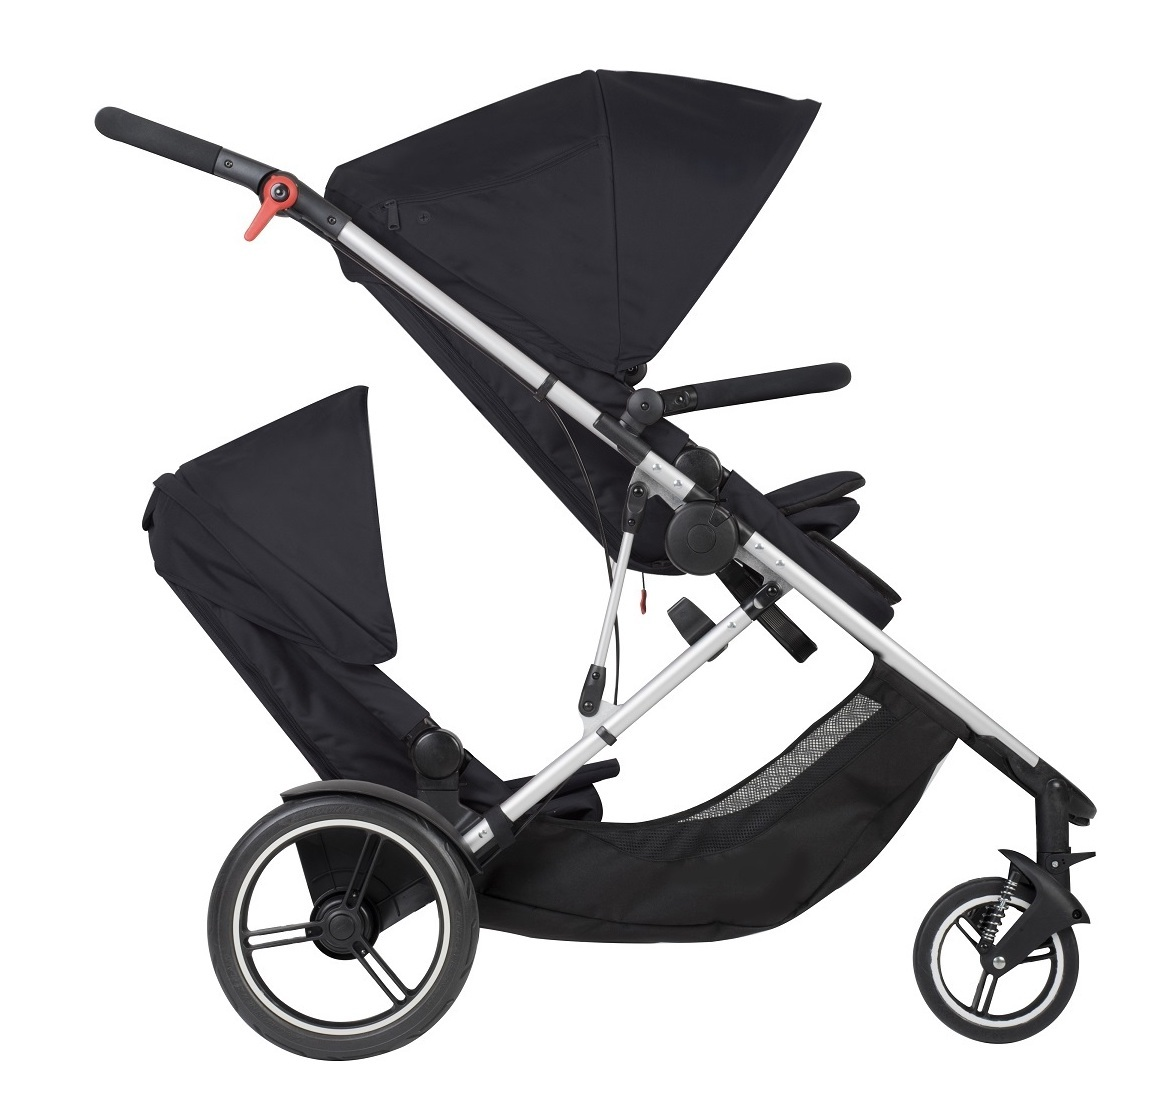 【40%OFF実施中】phil&teds voyager buggy Black フィルアンドテッズ ボイジャー